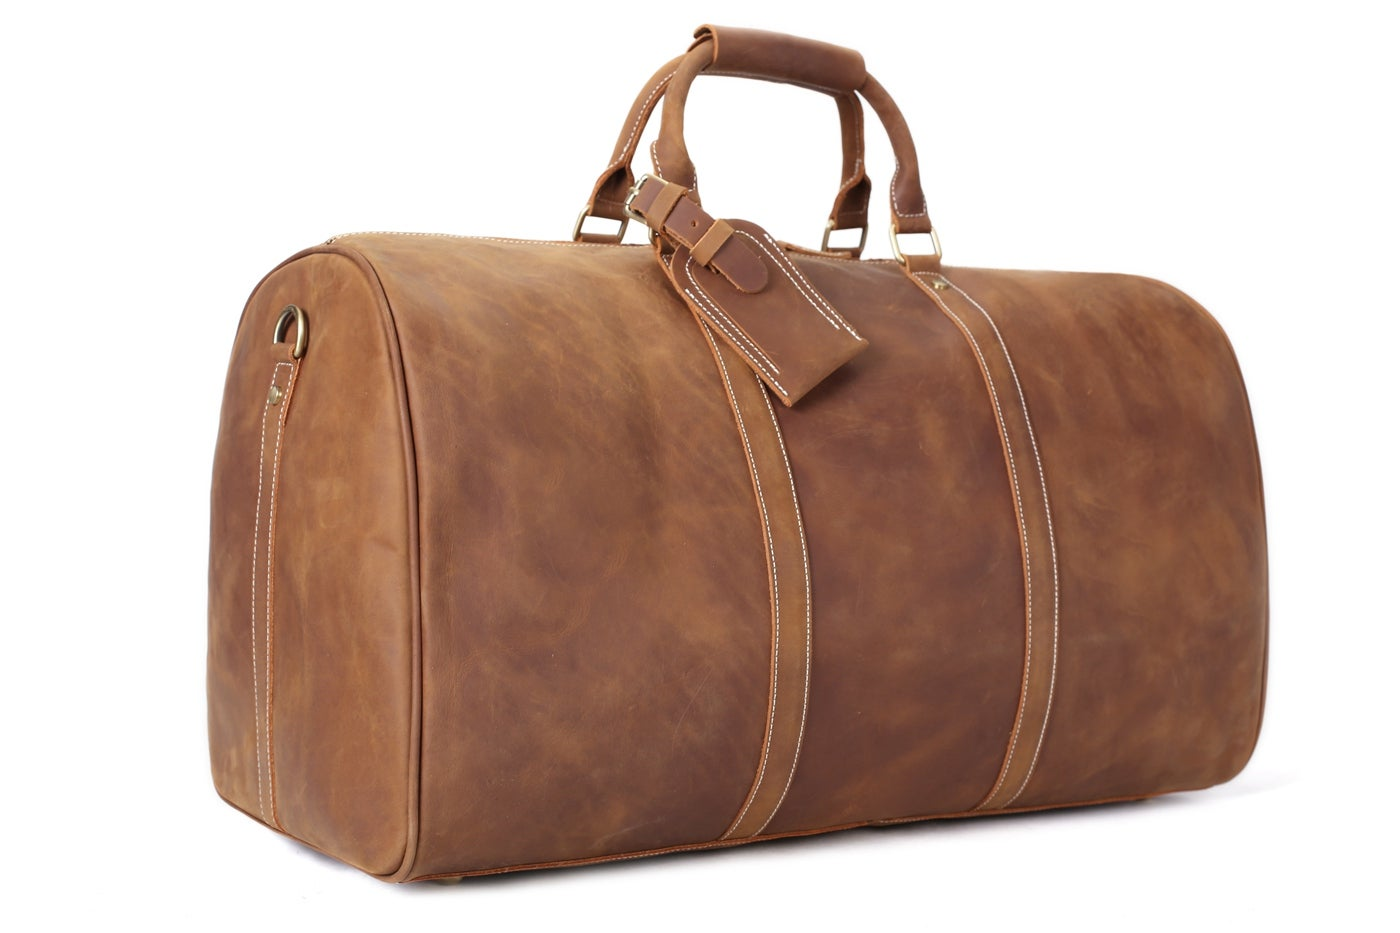 Image Of Handmade Large Vintage Full Grain Leather Travel Bag Duffle Holdall Luggage